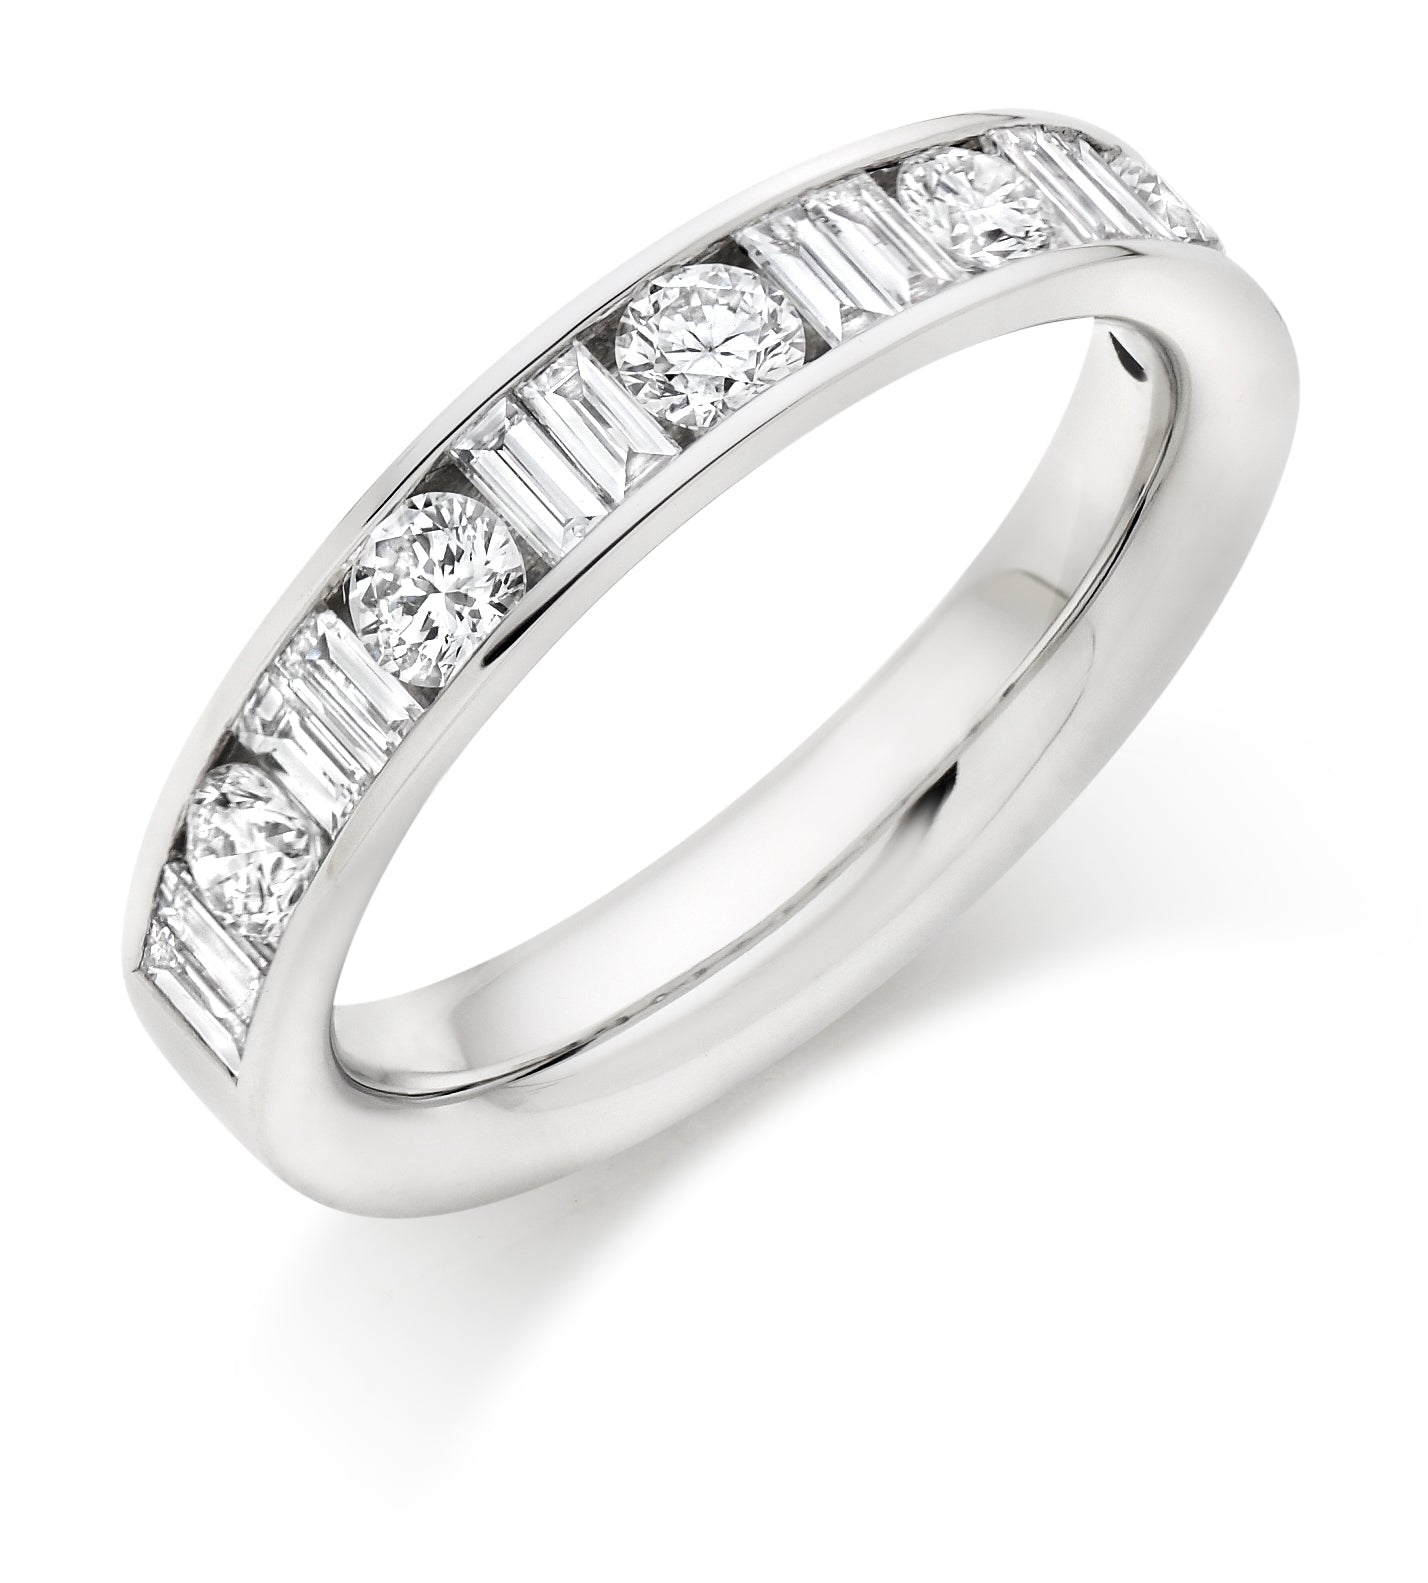 1ct Round Brilliant Cut and Baguette Cut Diamonds Eternity Ring - (Home Try-On)